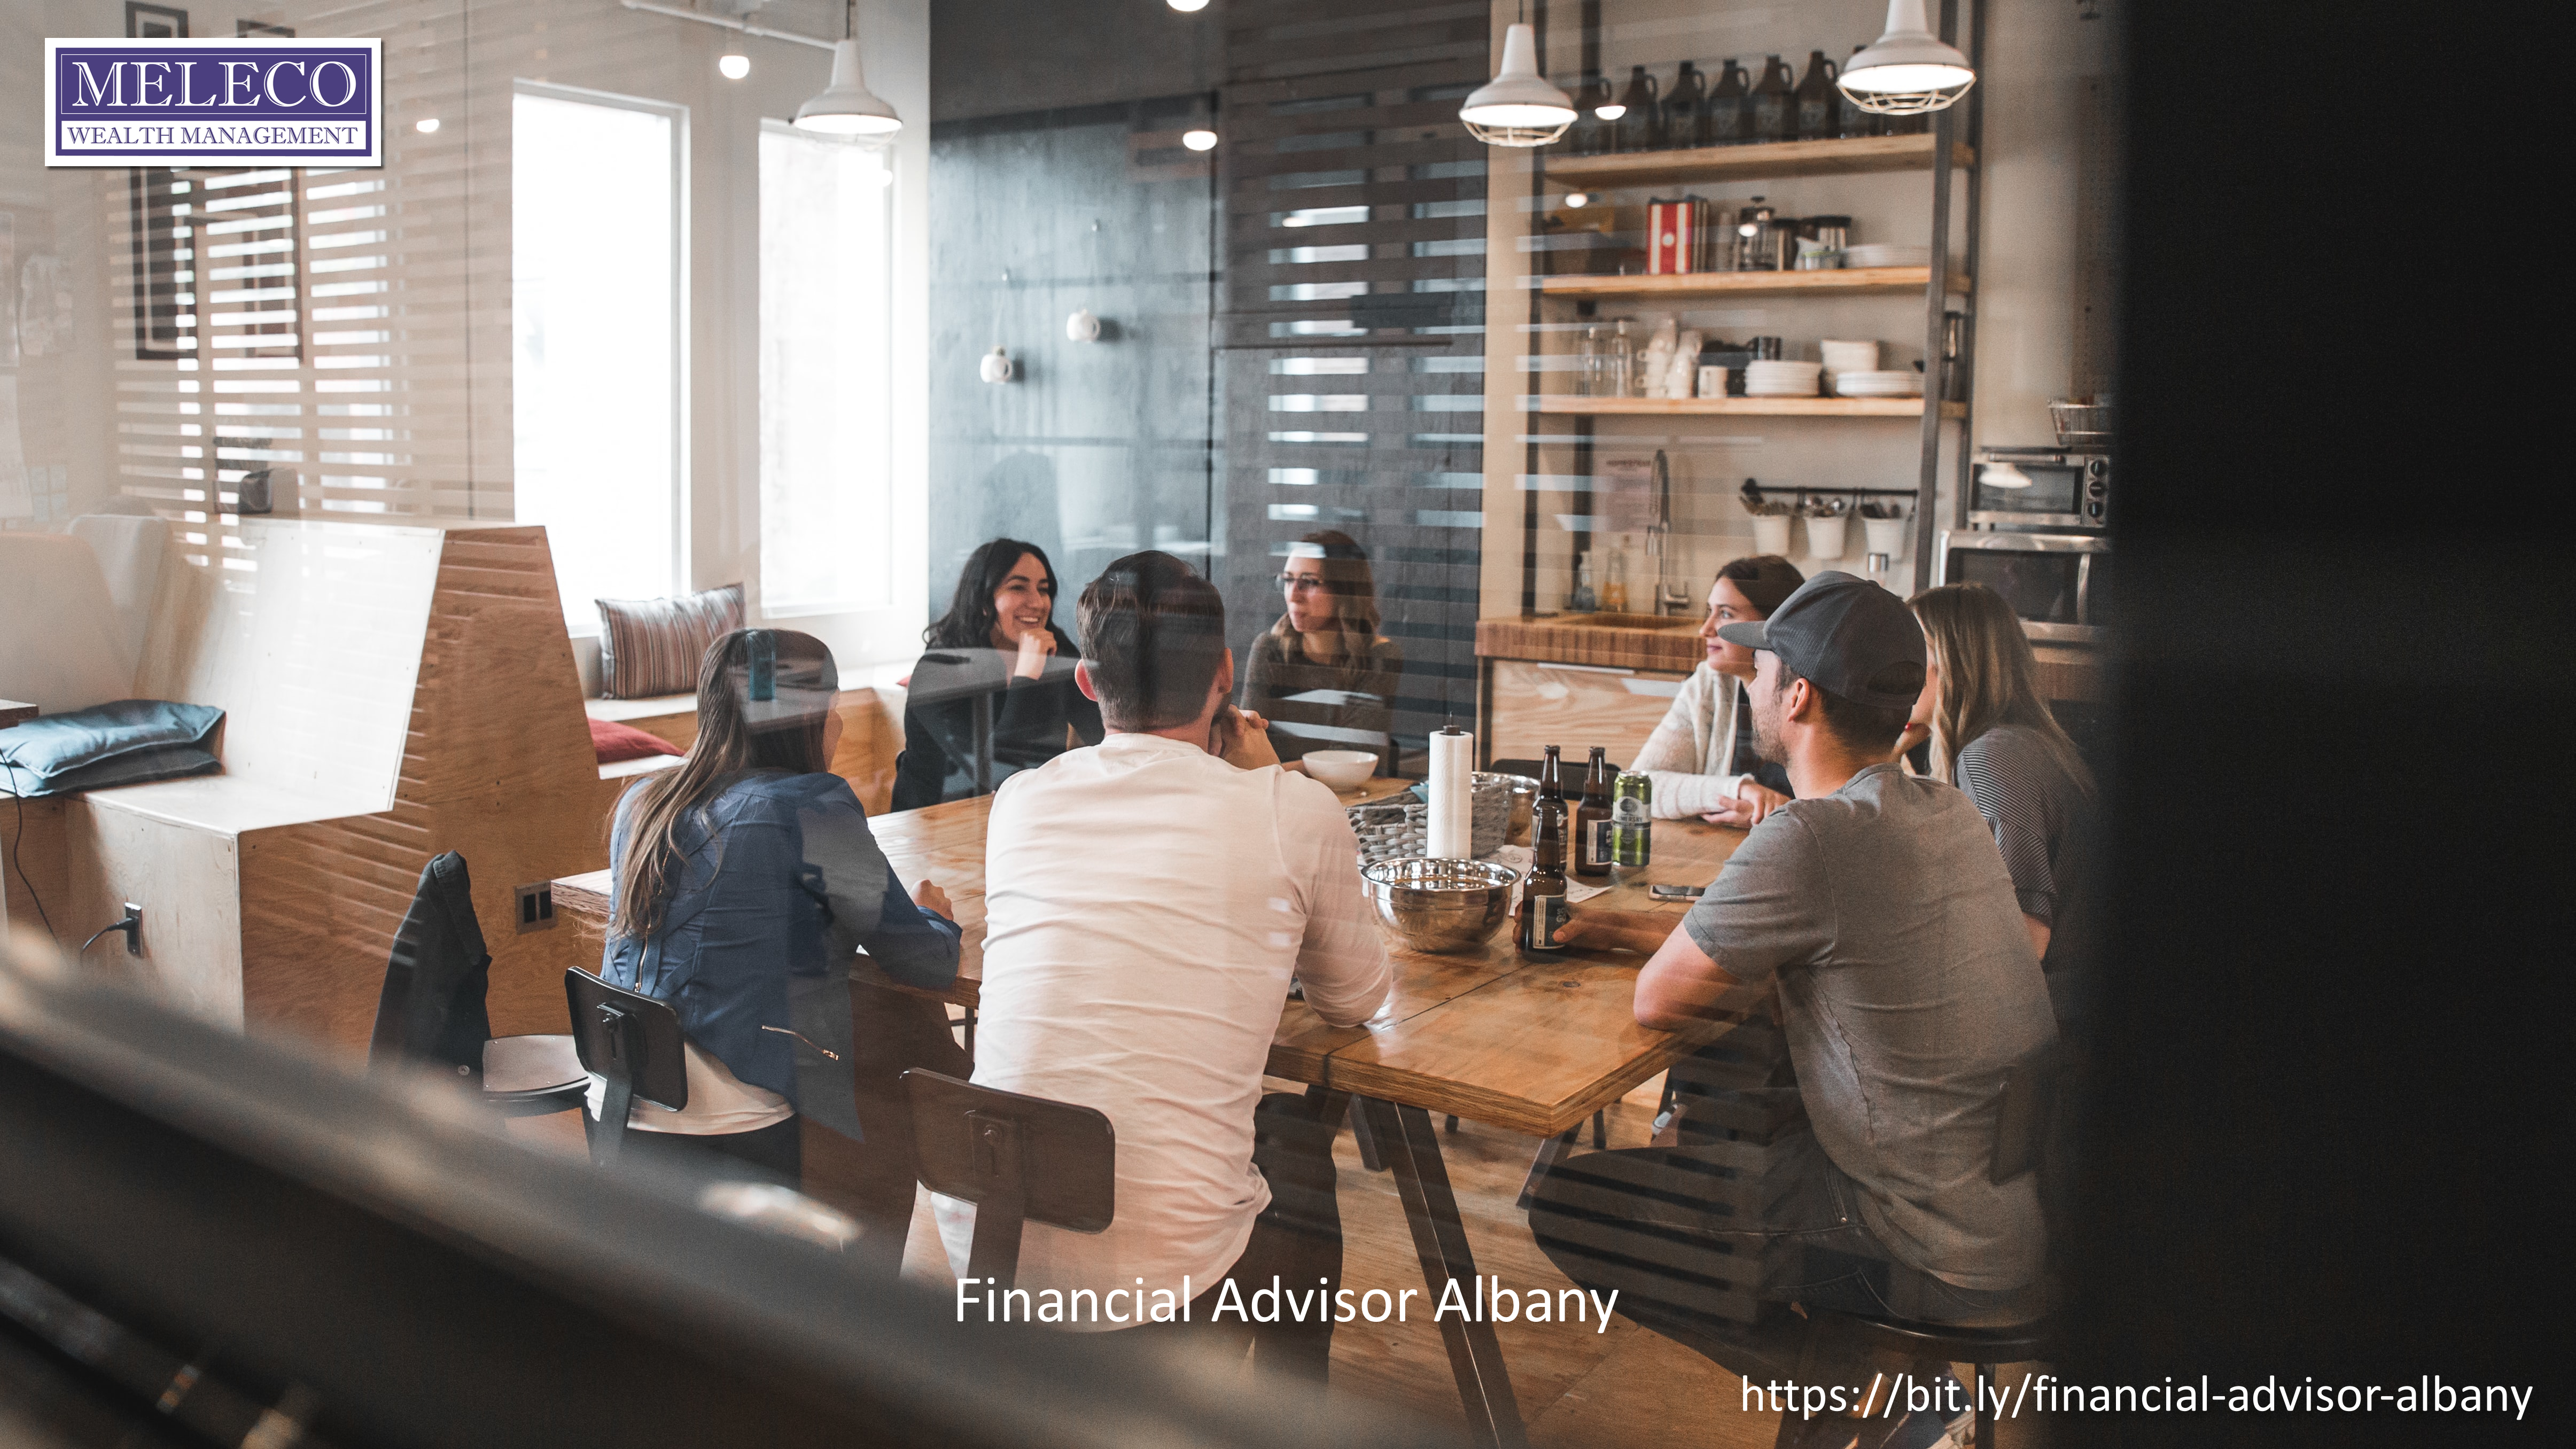 Meleco Wealth Management Highlights the Qualities of a Good Financial Advisor